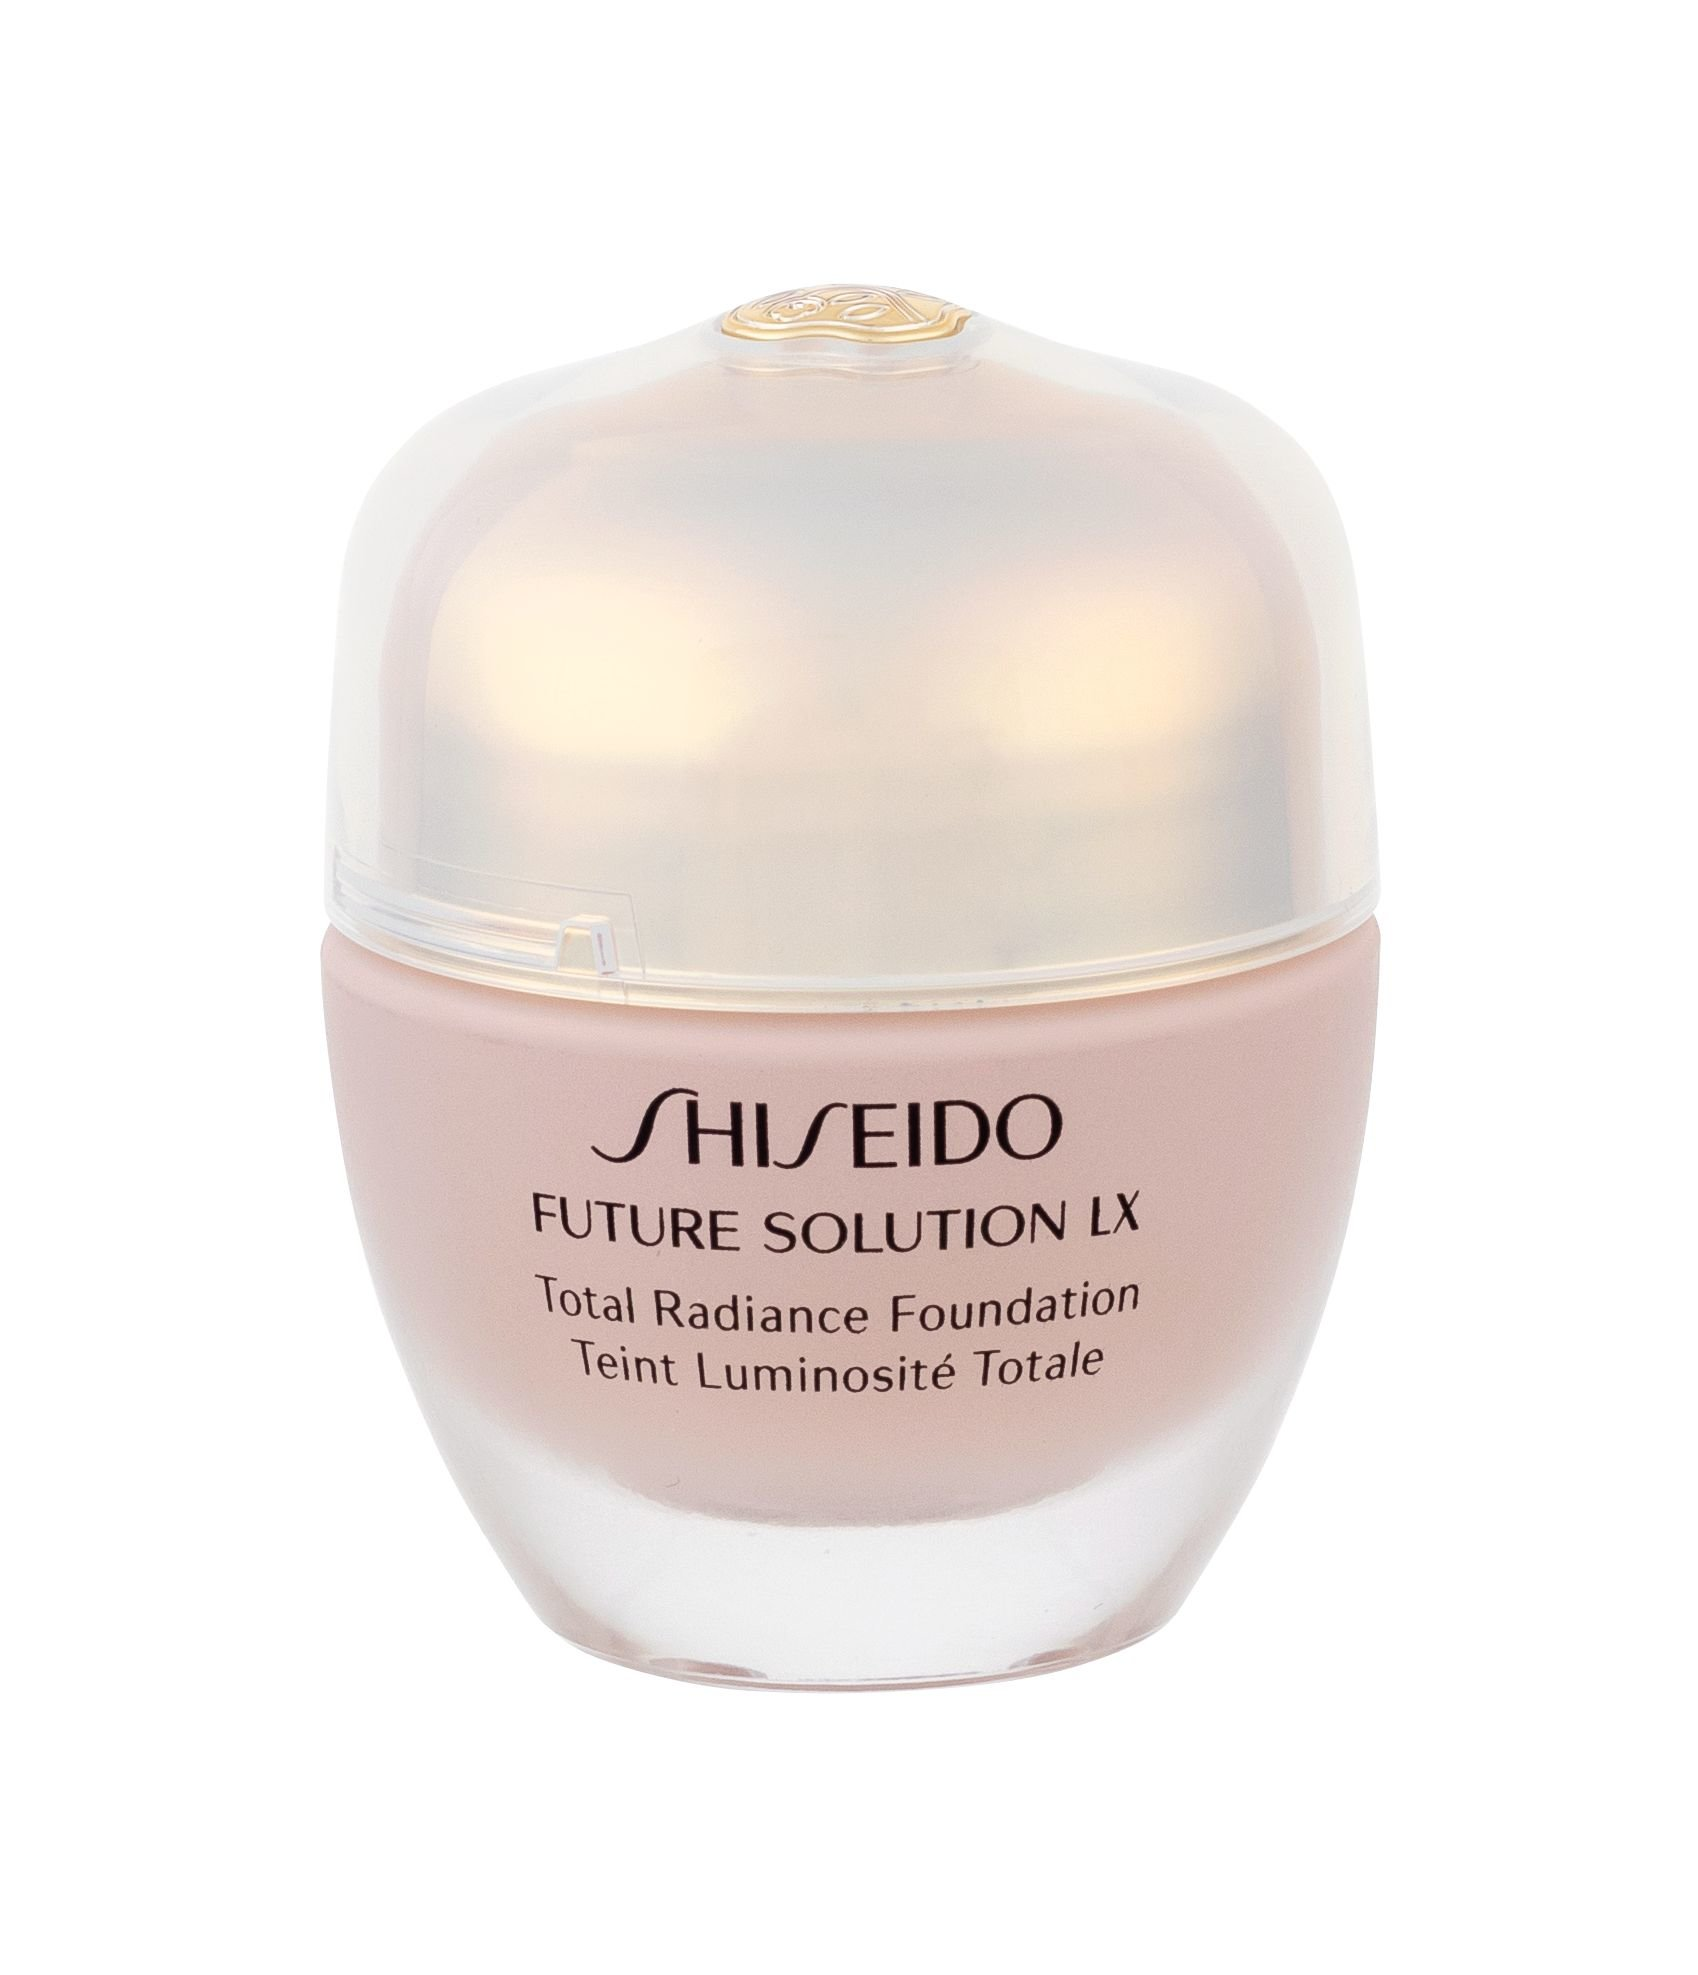 Shiseido Future Solution LX Cosmetic 30ml B40 Natural Fair Beige